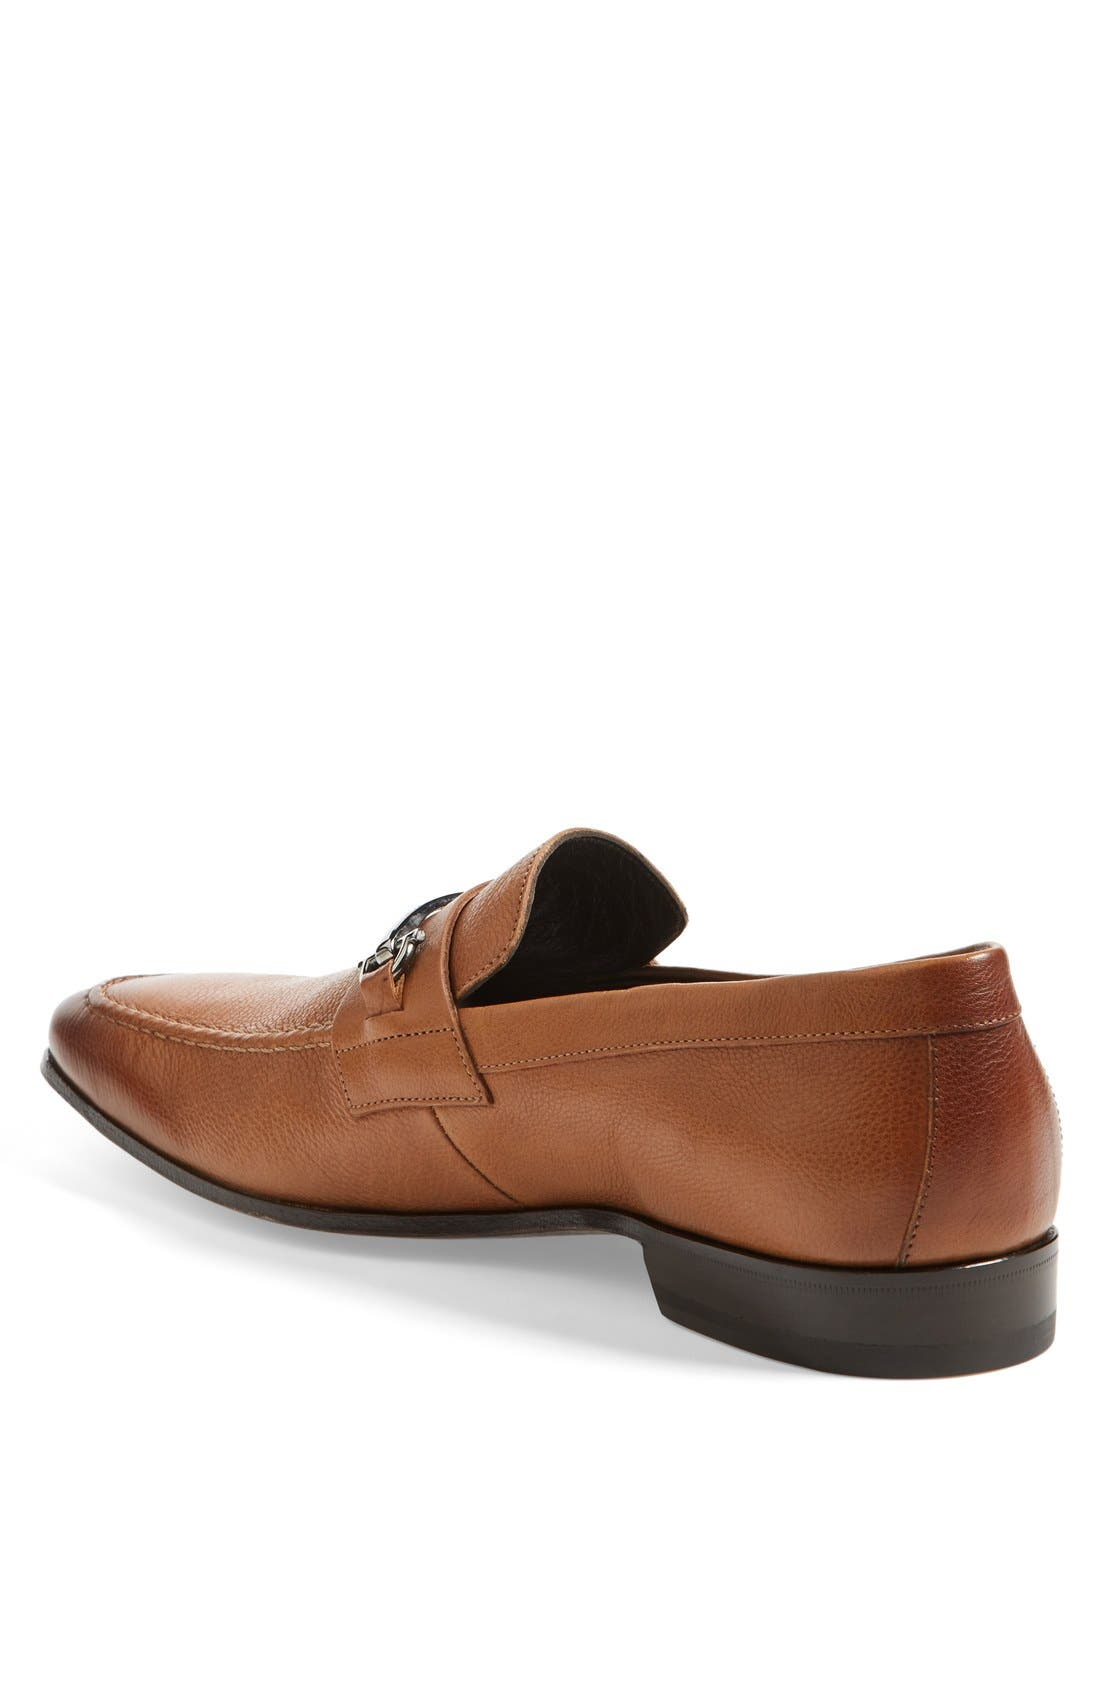 'Mamante II' Pebbled Leather Loafer,                             Alternate thumbnail 4, color,                             233